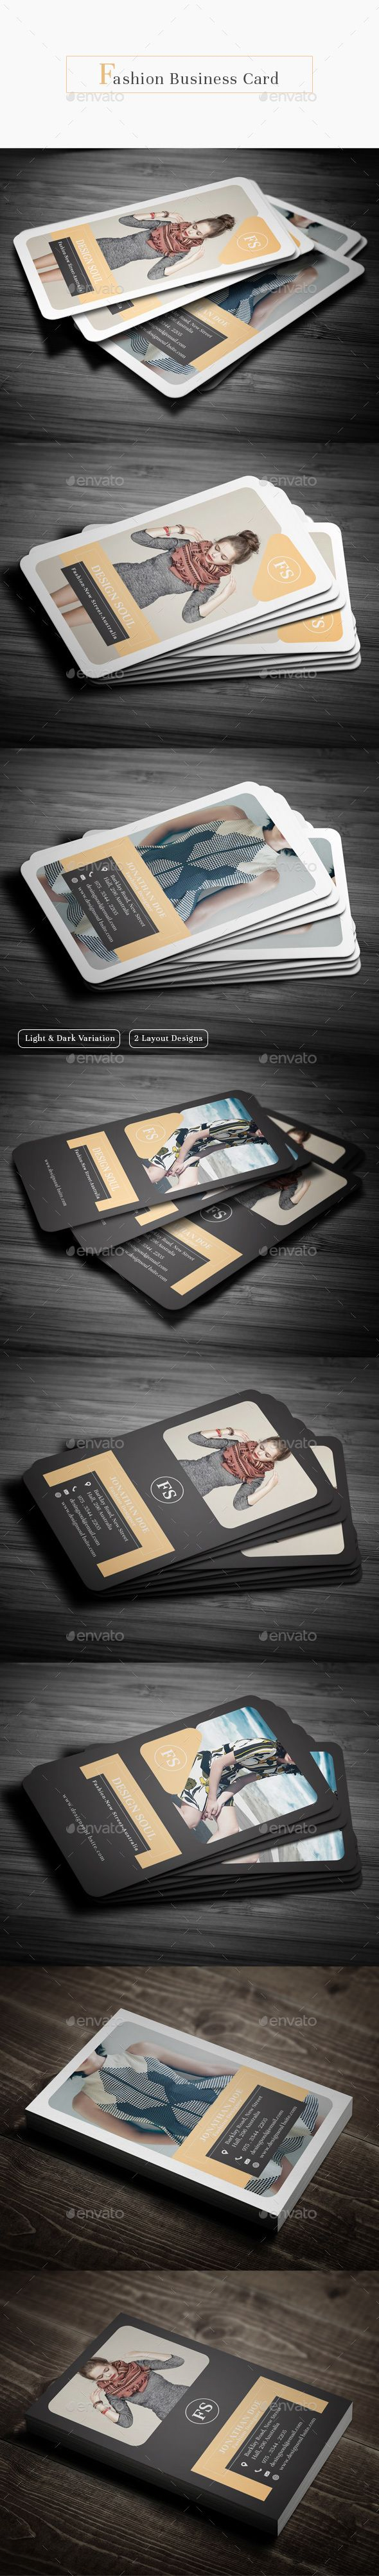 Fashion Business Card - Industry Specific Business Cards Download here : https://graphicriver.net/item/fashion-business-card/19113885?s_rank=177&ref=Al-fatih